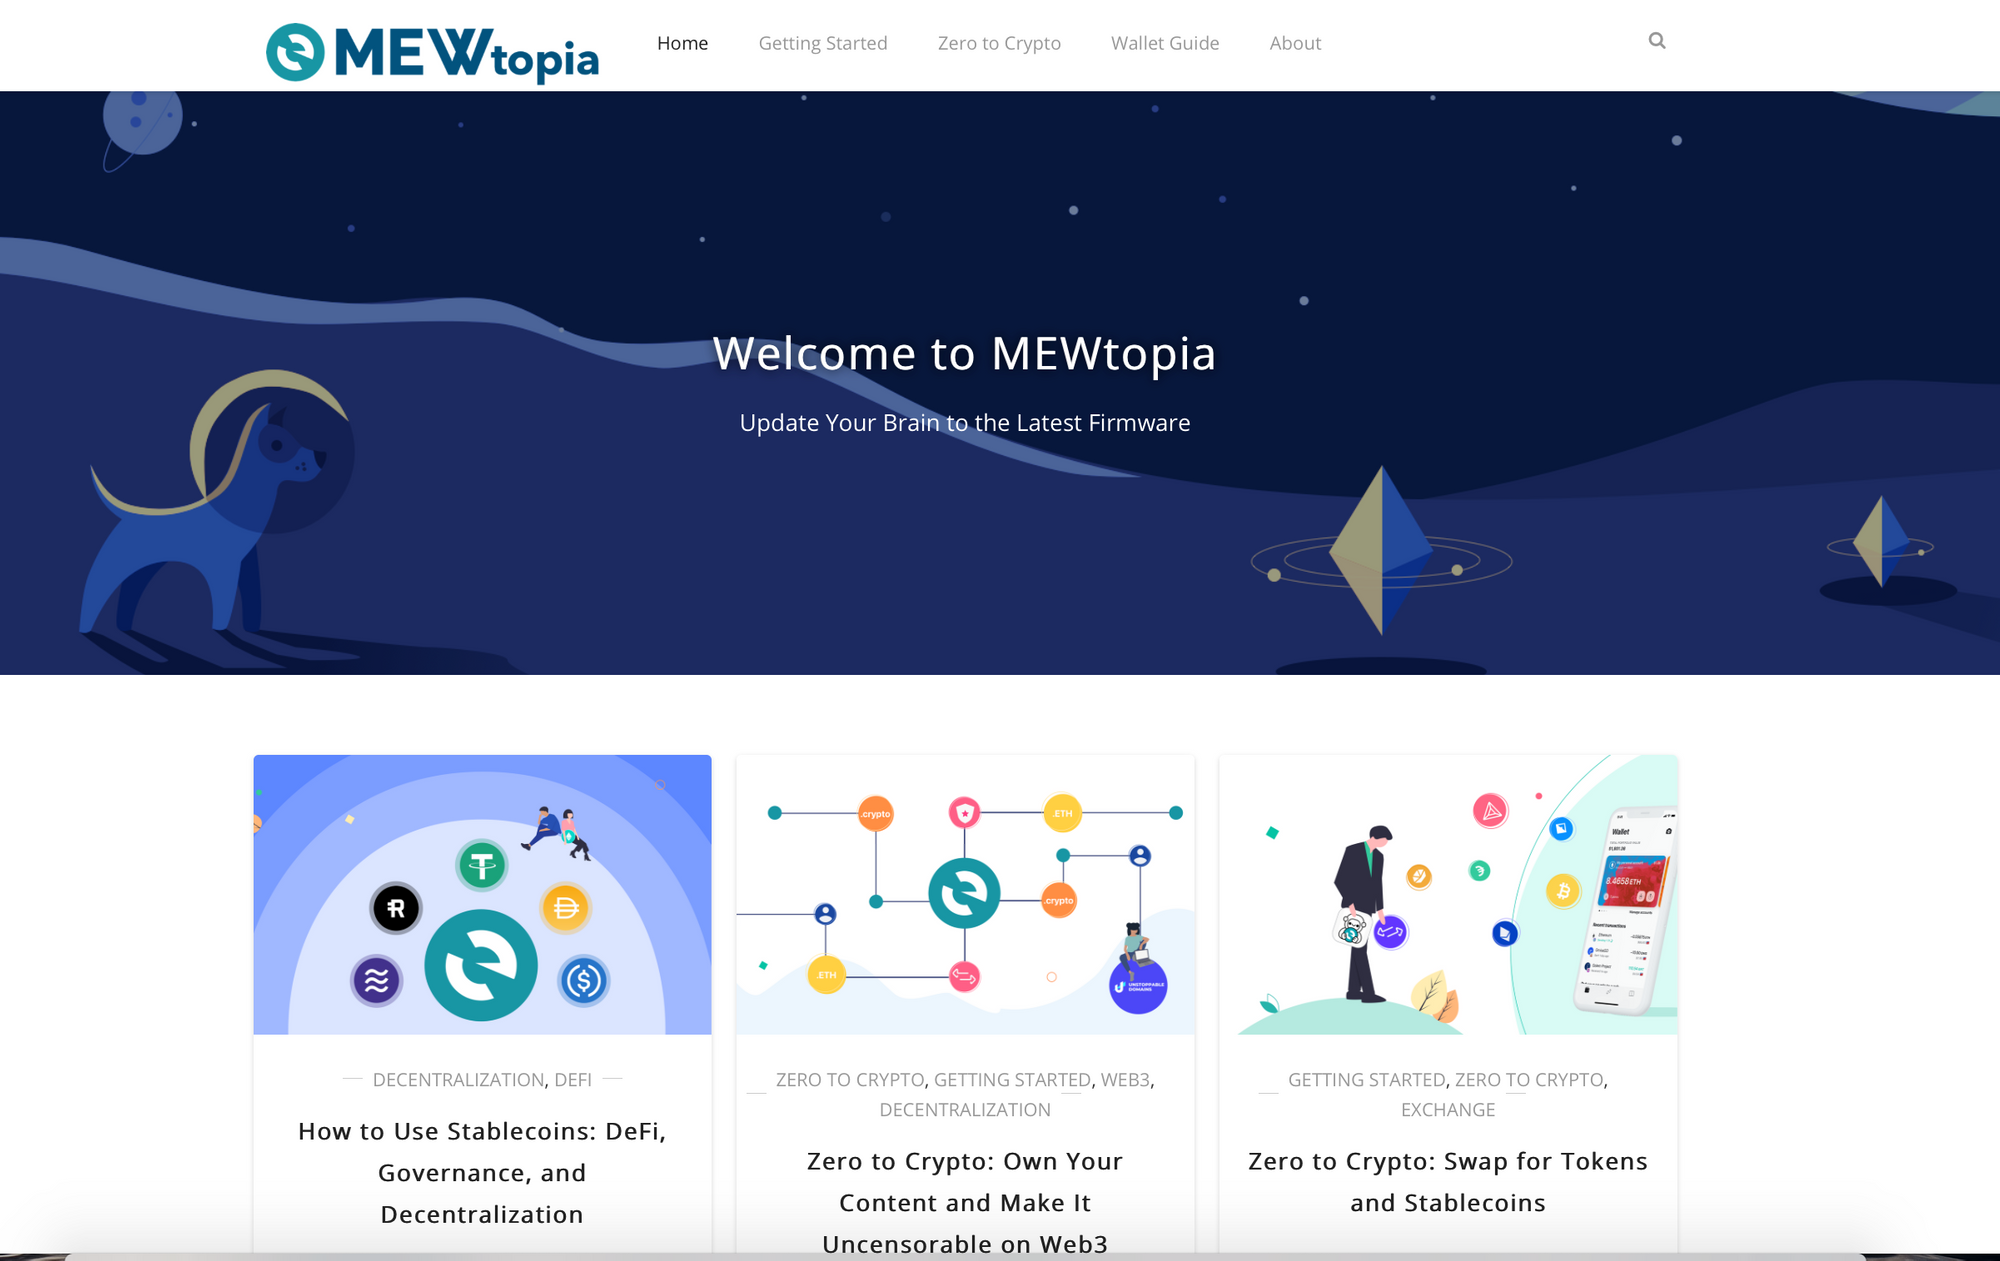 MEWtopia home page